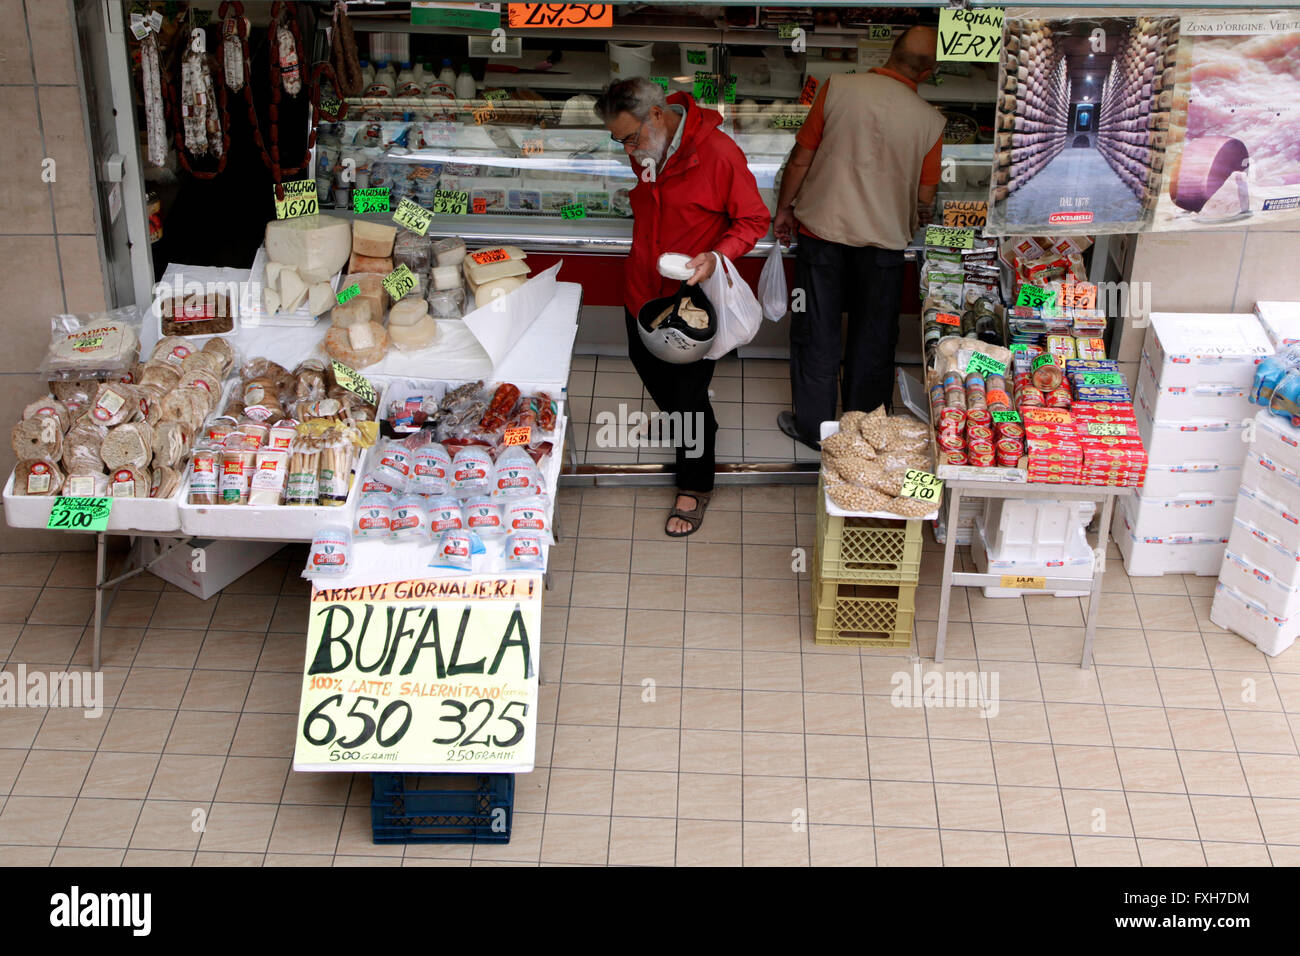 Signs display the price in euros of italian cheese inside an indoor market in Rome, Italy - Stock Image